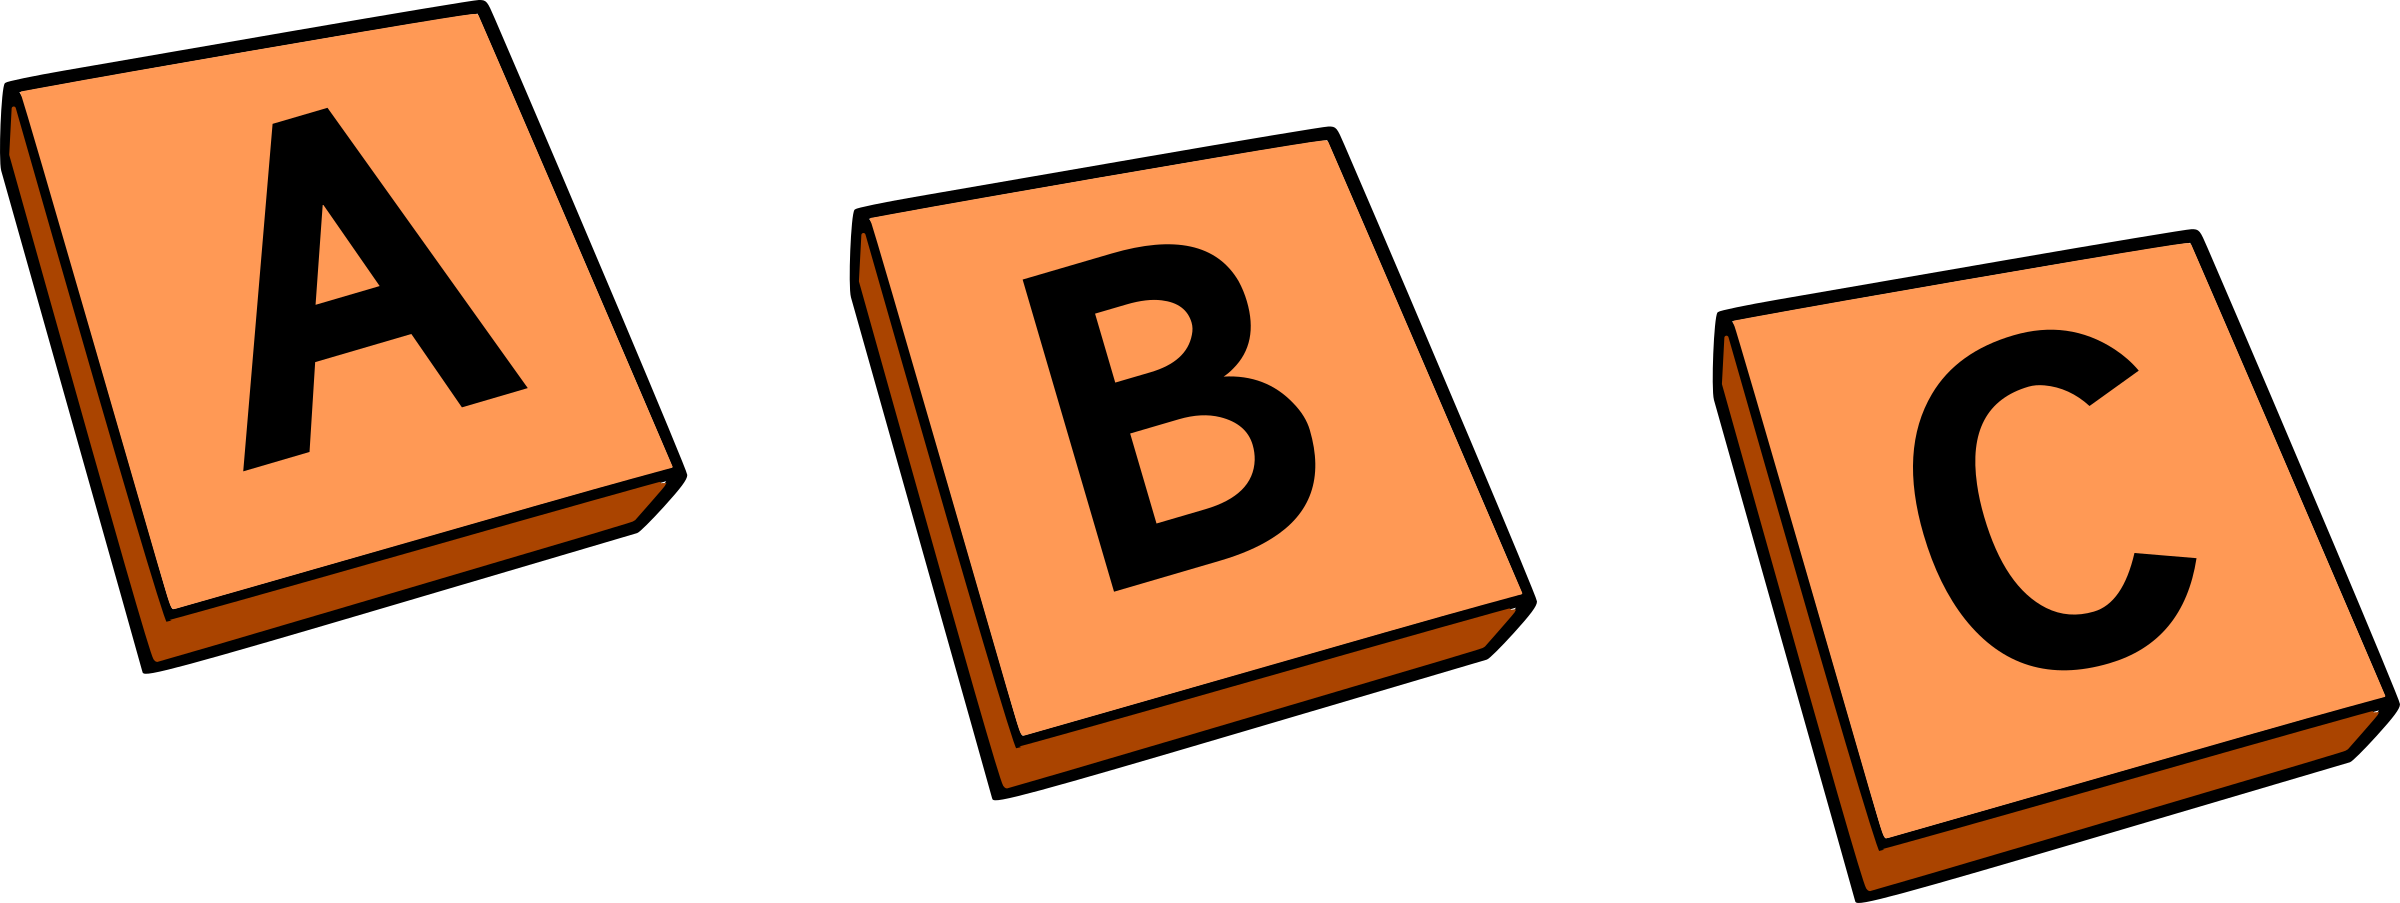 Big image png. Clipart of abc